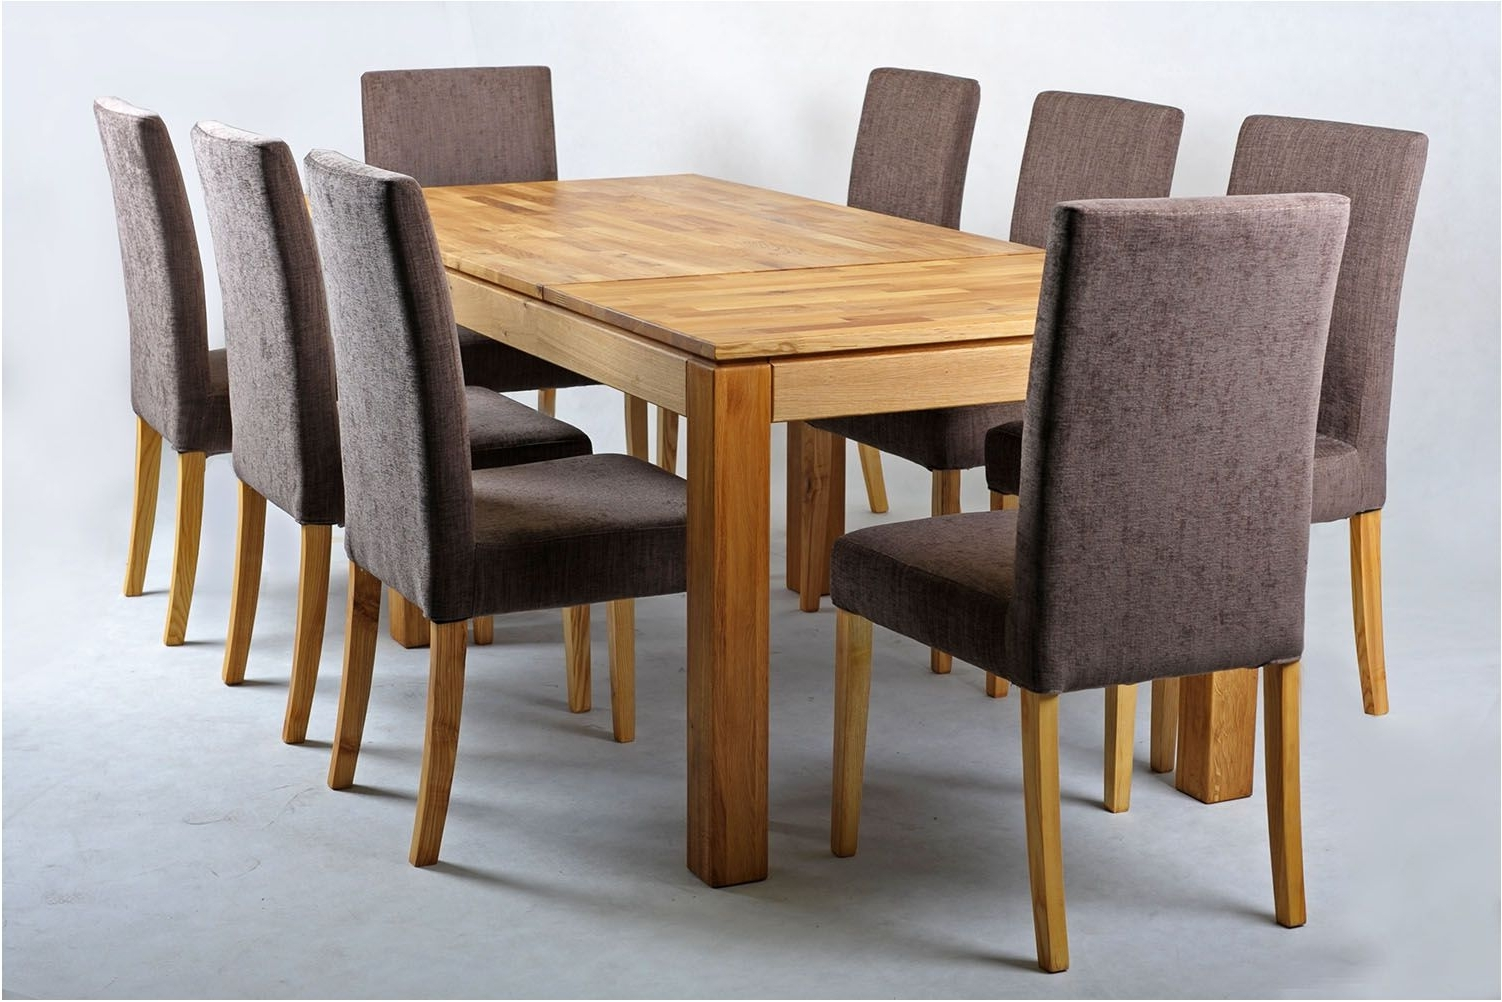 Terrific Solid Oak Extending Dining Table And Chairs Set Home Goods For Famous Extending Oak Dining Tables And Chairs (View 21 of 25)